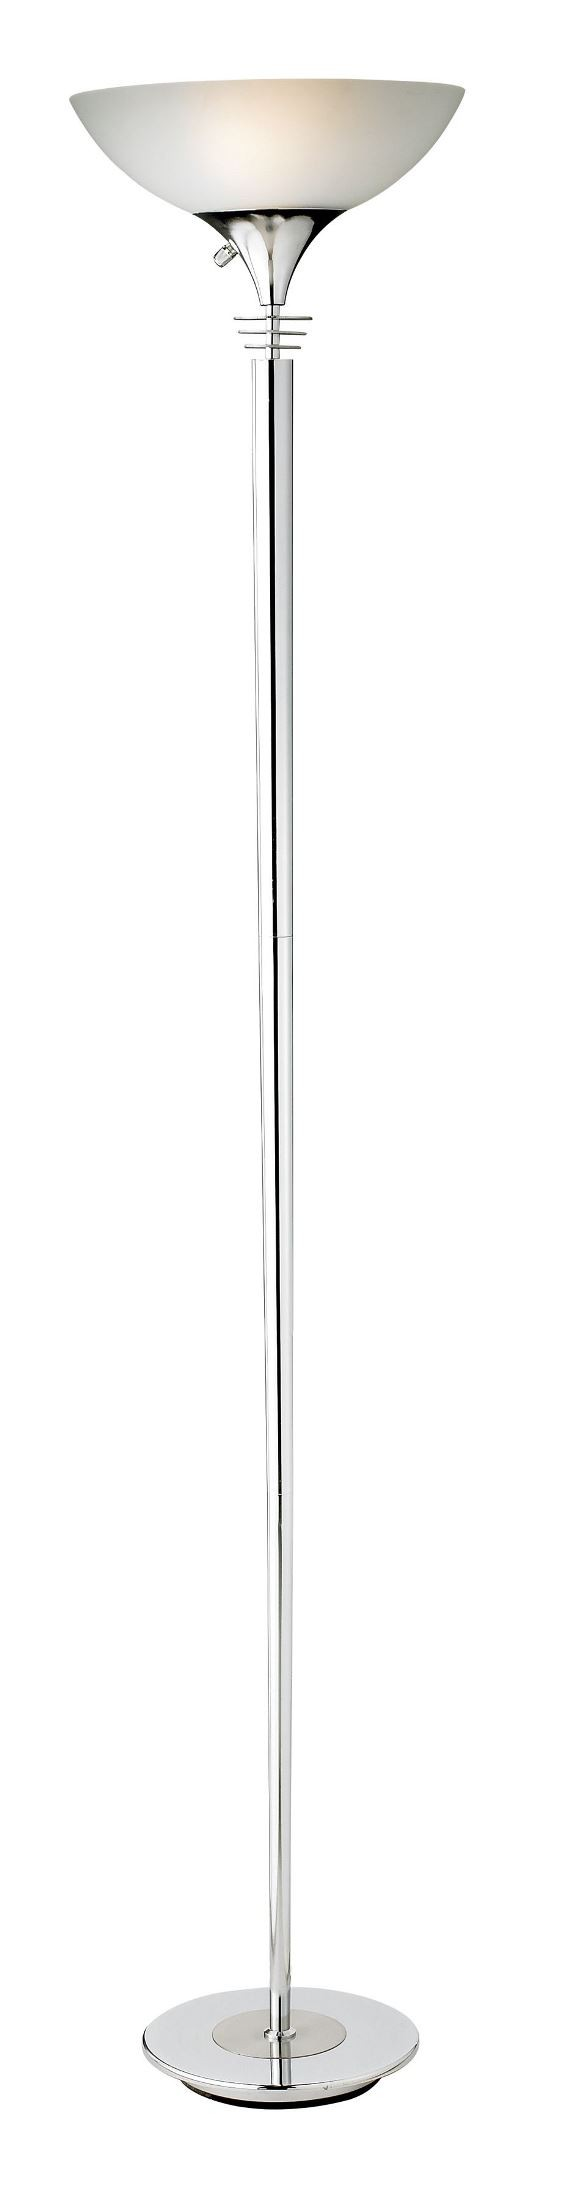 Metropolis chrome floor lamp from adesso 5120 22 for Adesso metropolis floor lamp silver